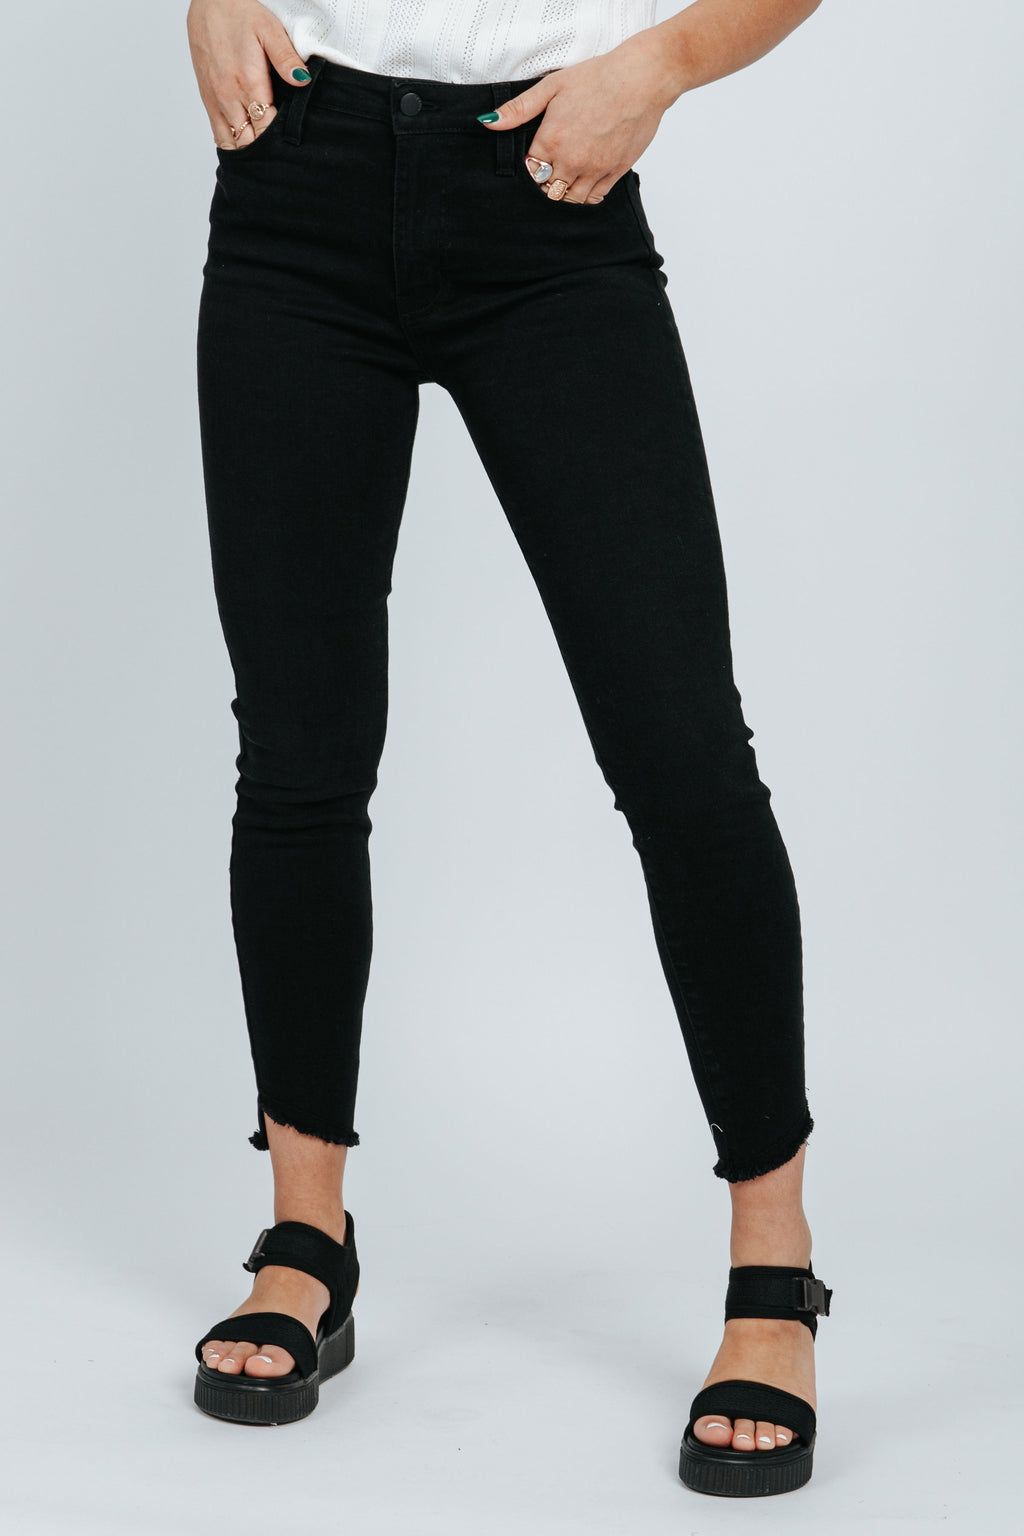 Letter To Juliet: The Verona Slant Hem Skinny Jean in Washed Black, studio shoot; front view